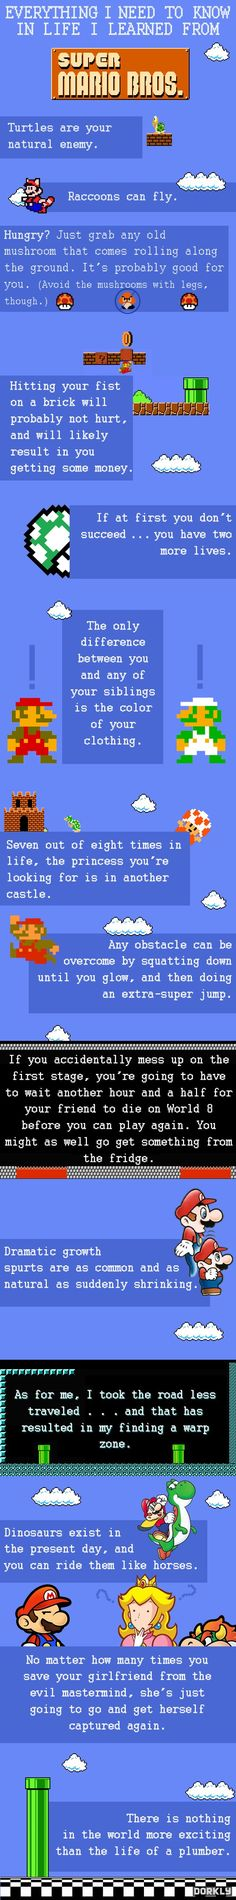 Life lessons learned from Super Mario Bros.